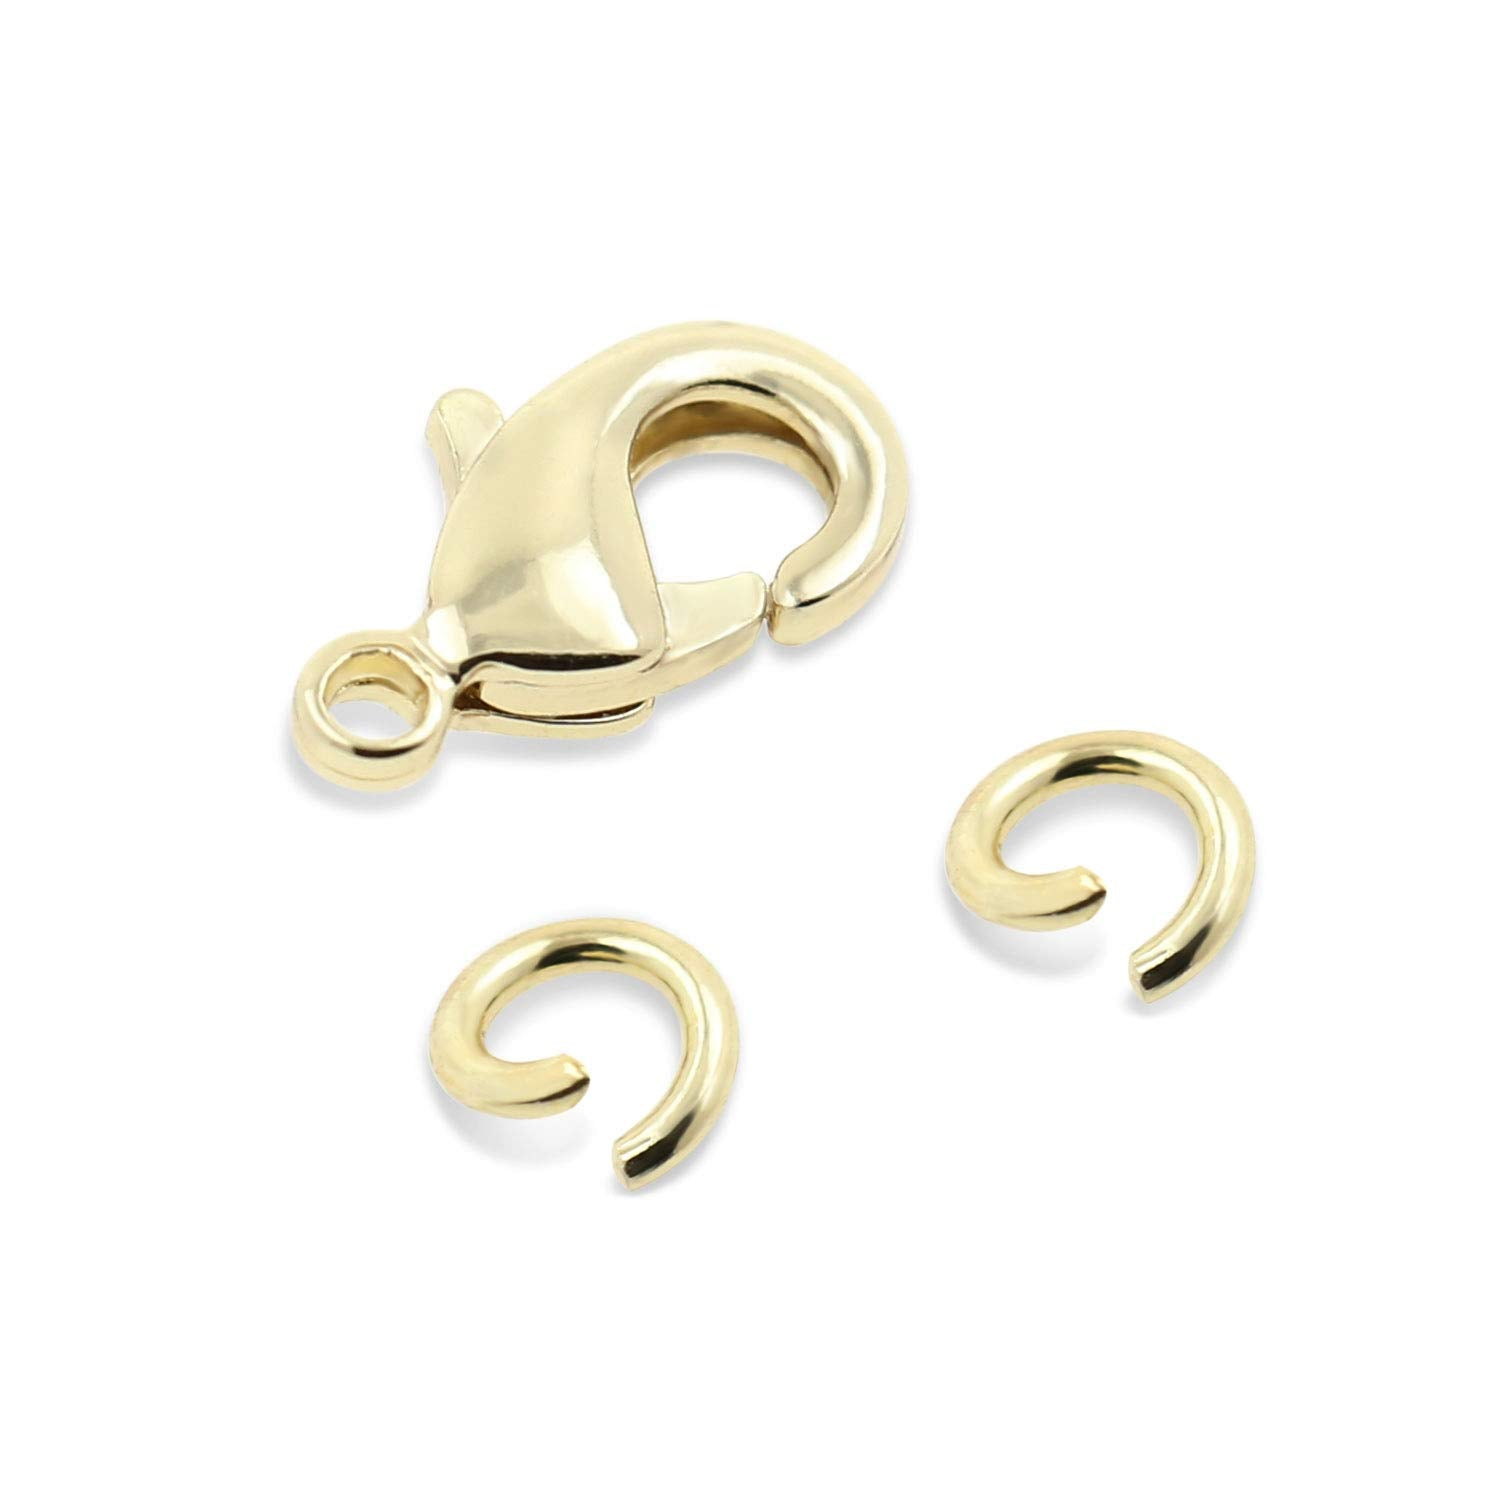 18K Gold 50 PCS 9mm Small Lobster Clasps and 100 PCS 4mm Open Jump Rings